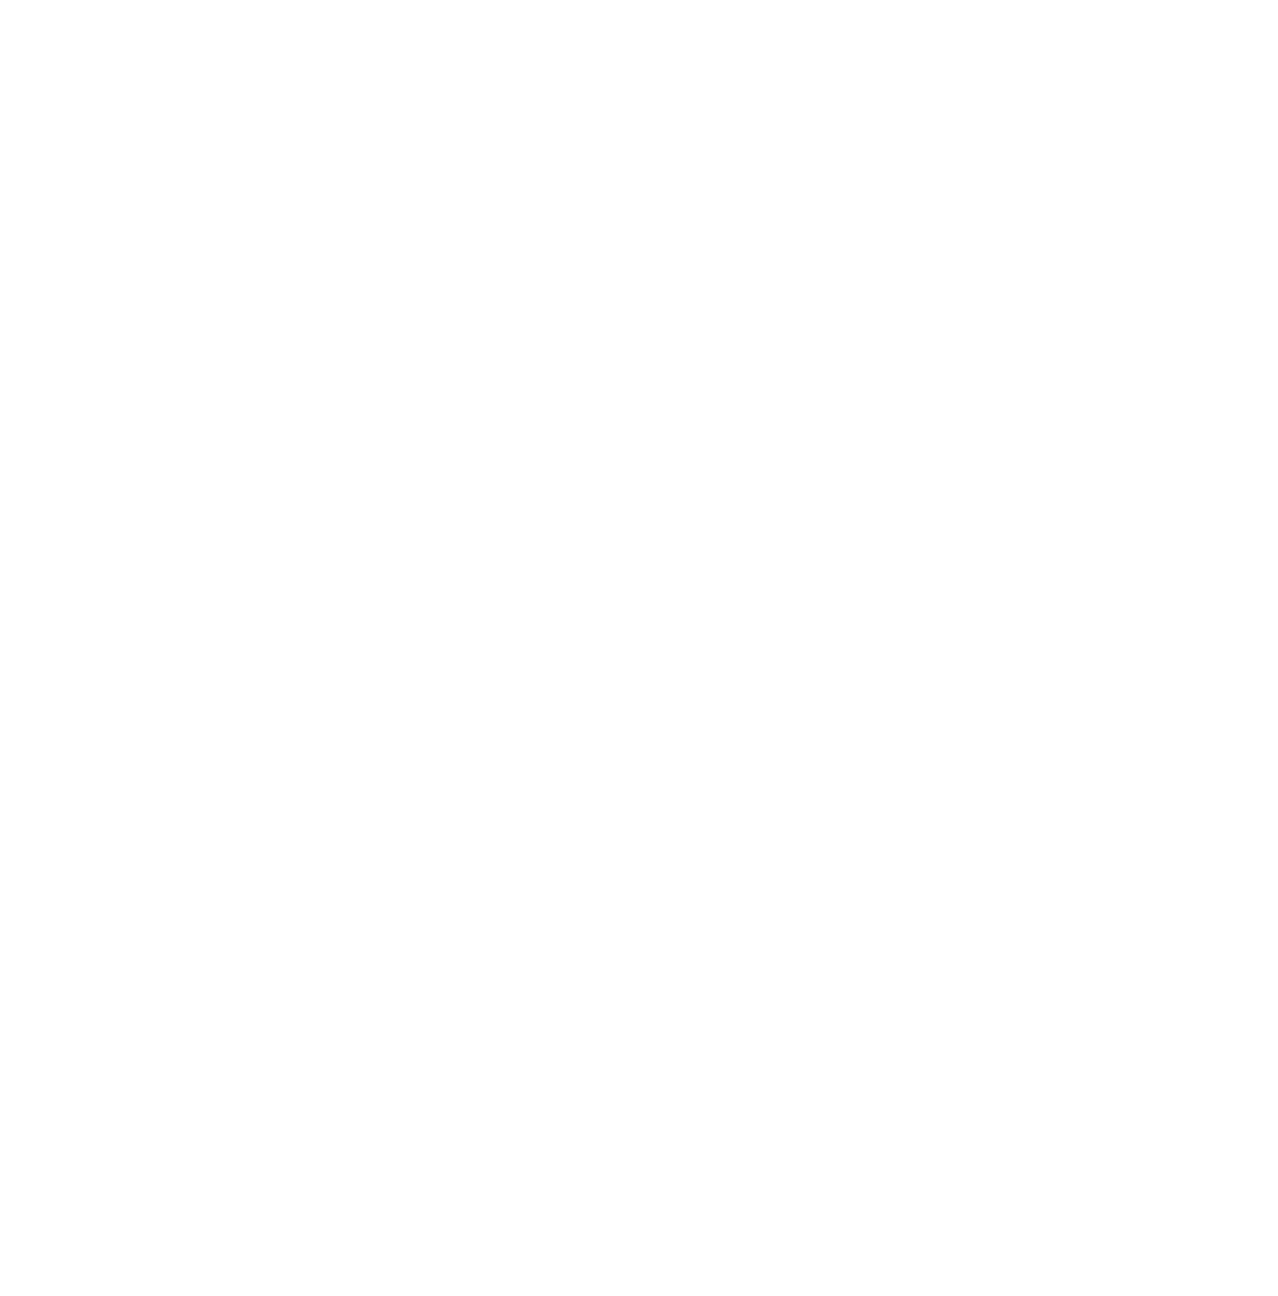 Lori Mack Photography